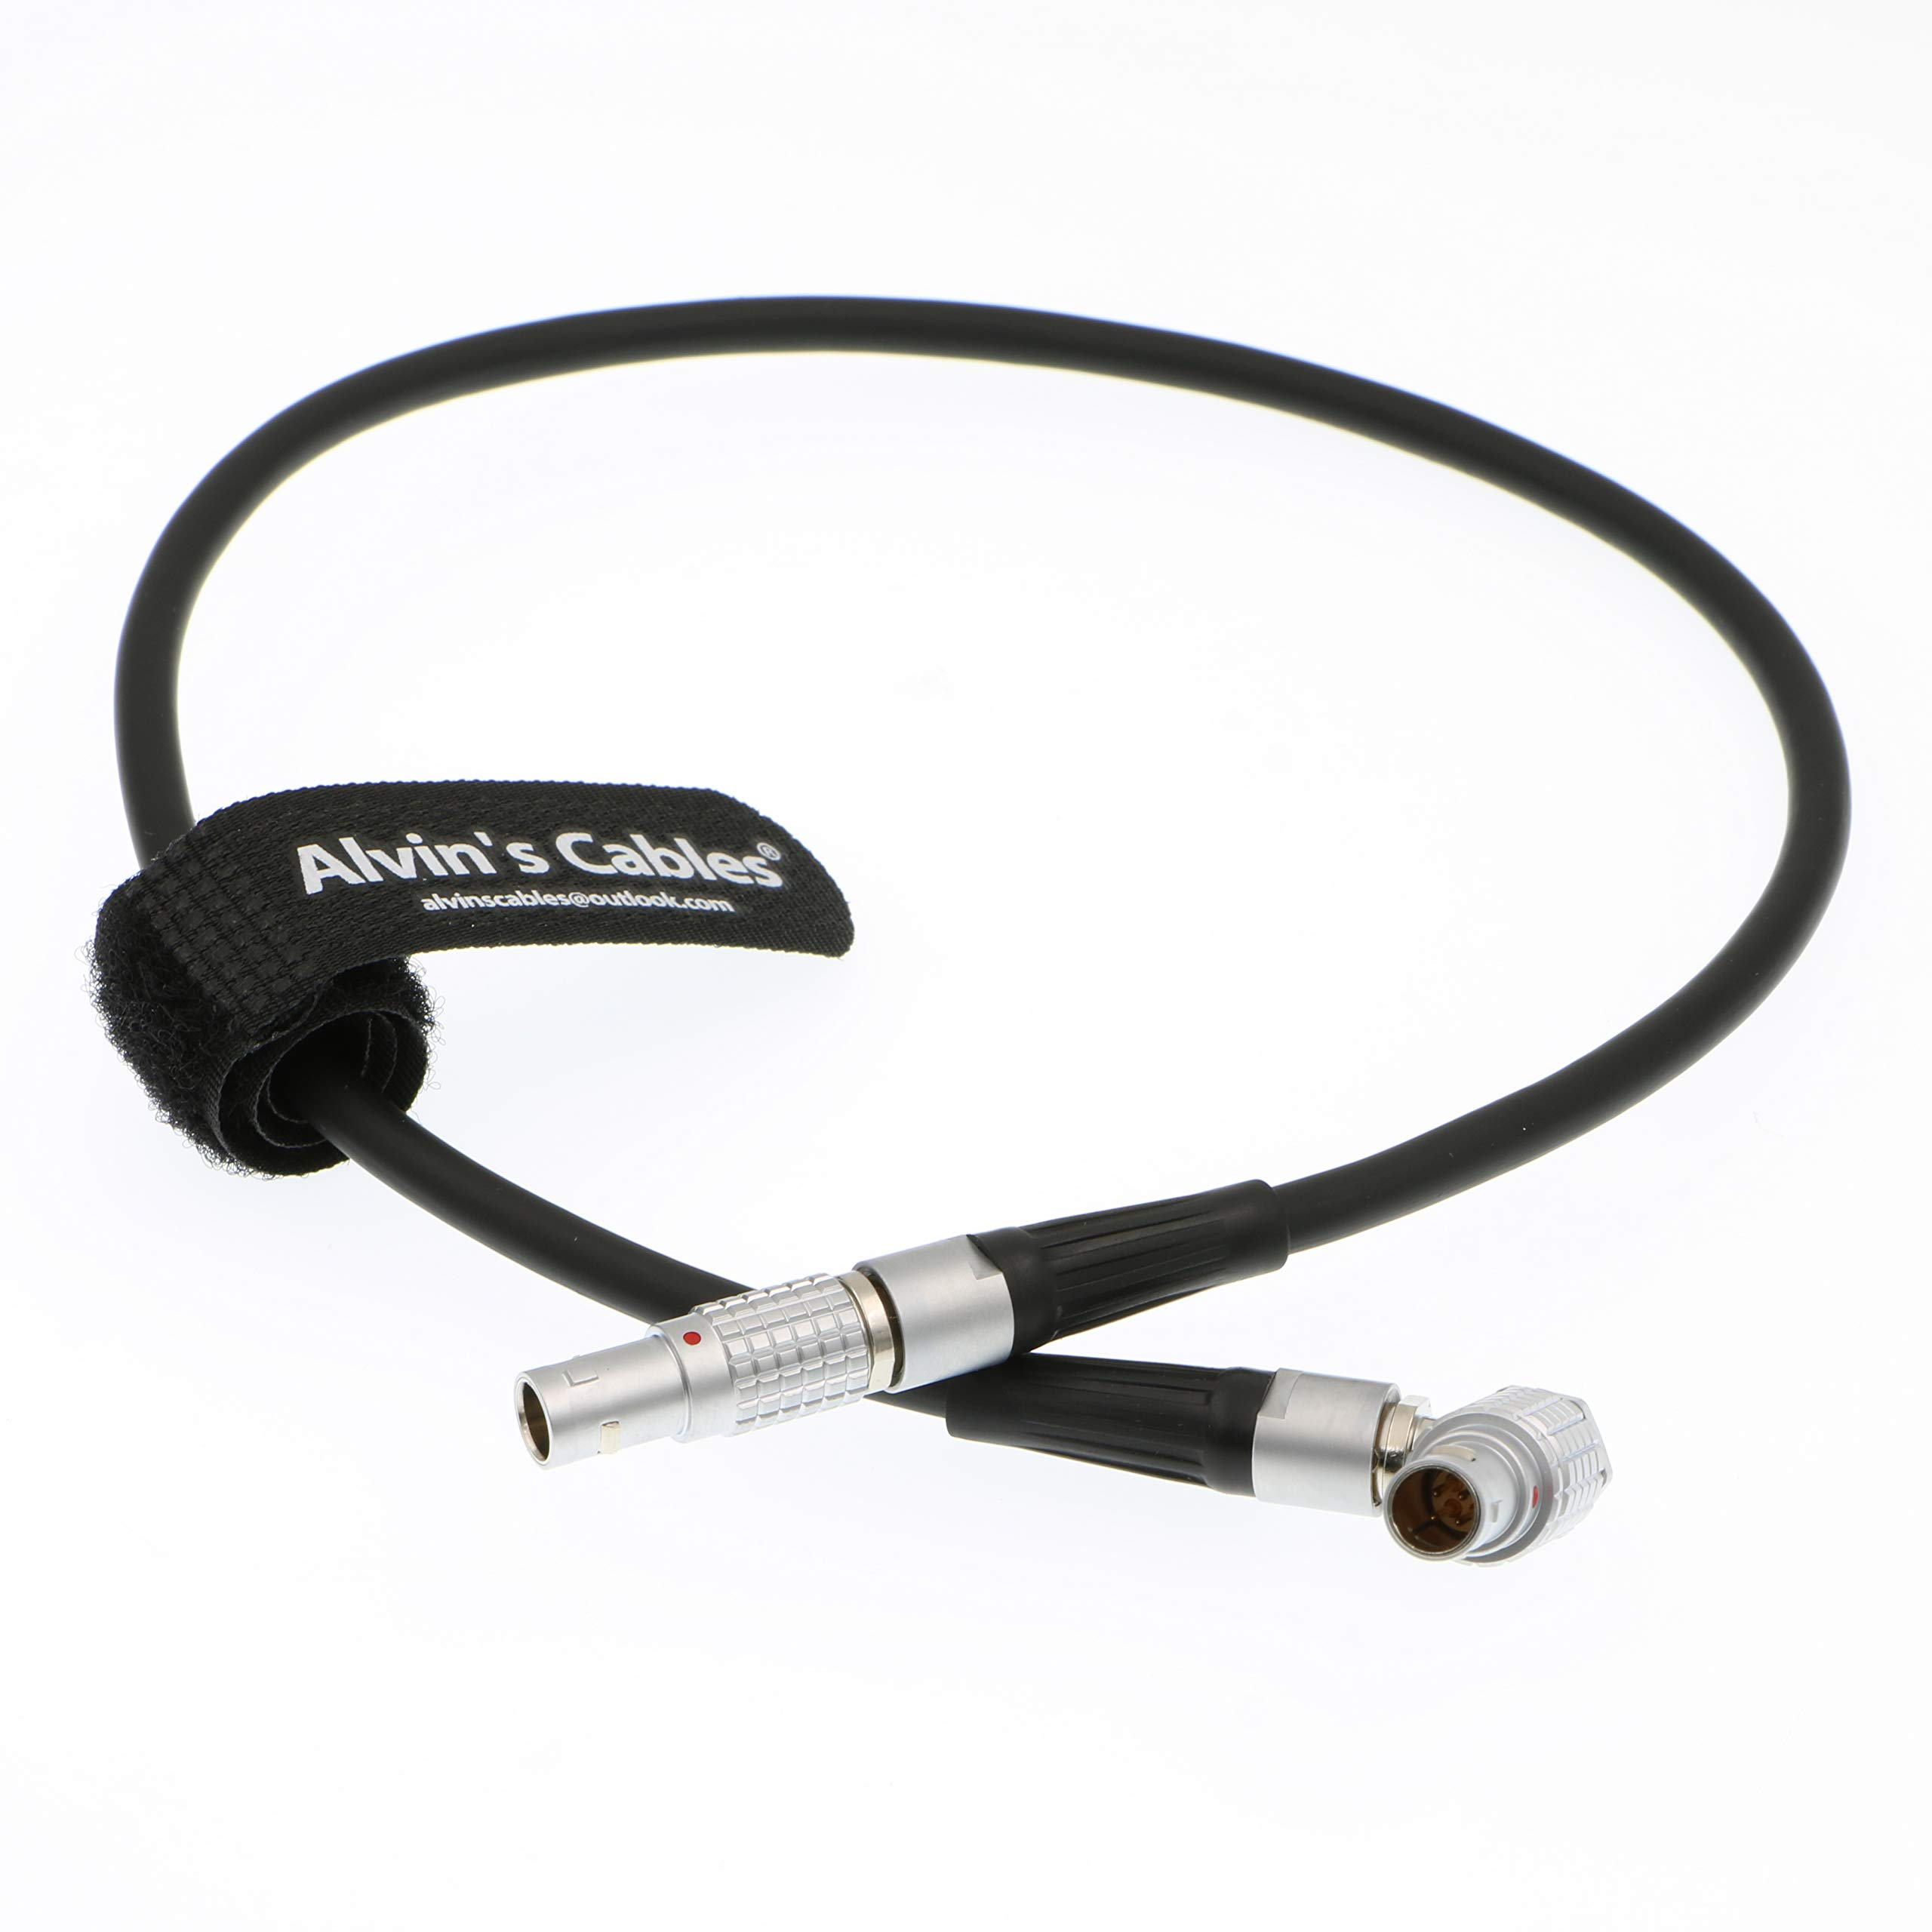 Alvin's Cables RT Motion MK3.1 Motor Cable 4 Pin Right Angle Male to Straight 4 Pin Male Cord